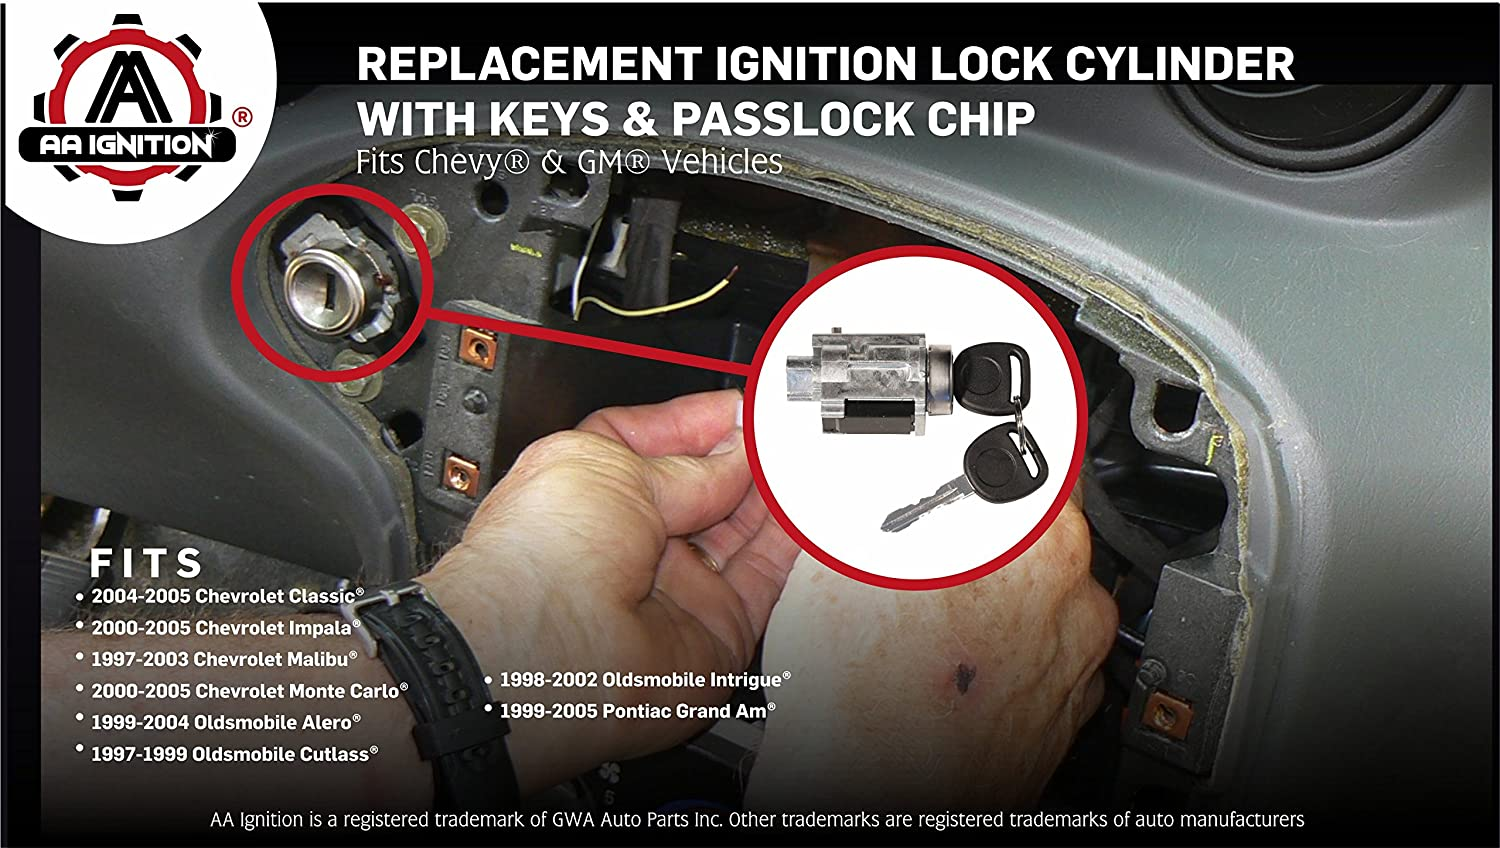 2003 Chevy Malibu Ignition Cylinder Impala Passlock Wiring Diagram Lock With Keys Chip Starter Switch Replaces Us Fits 1500x848